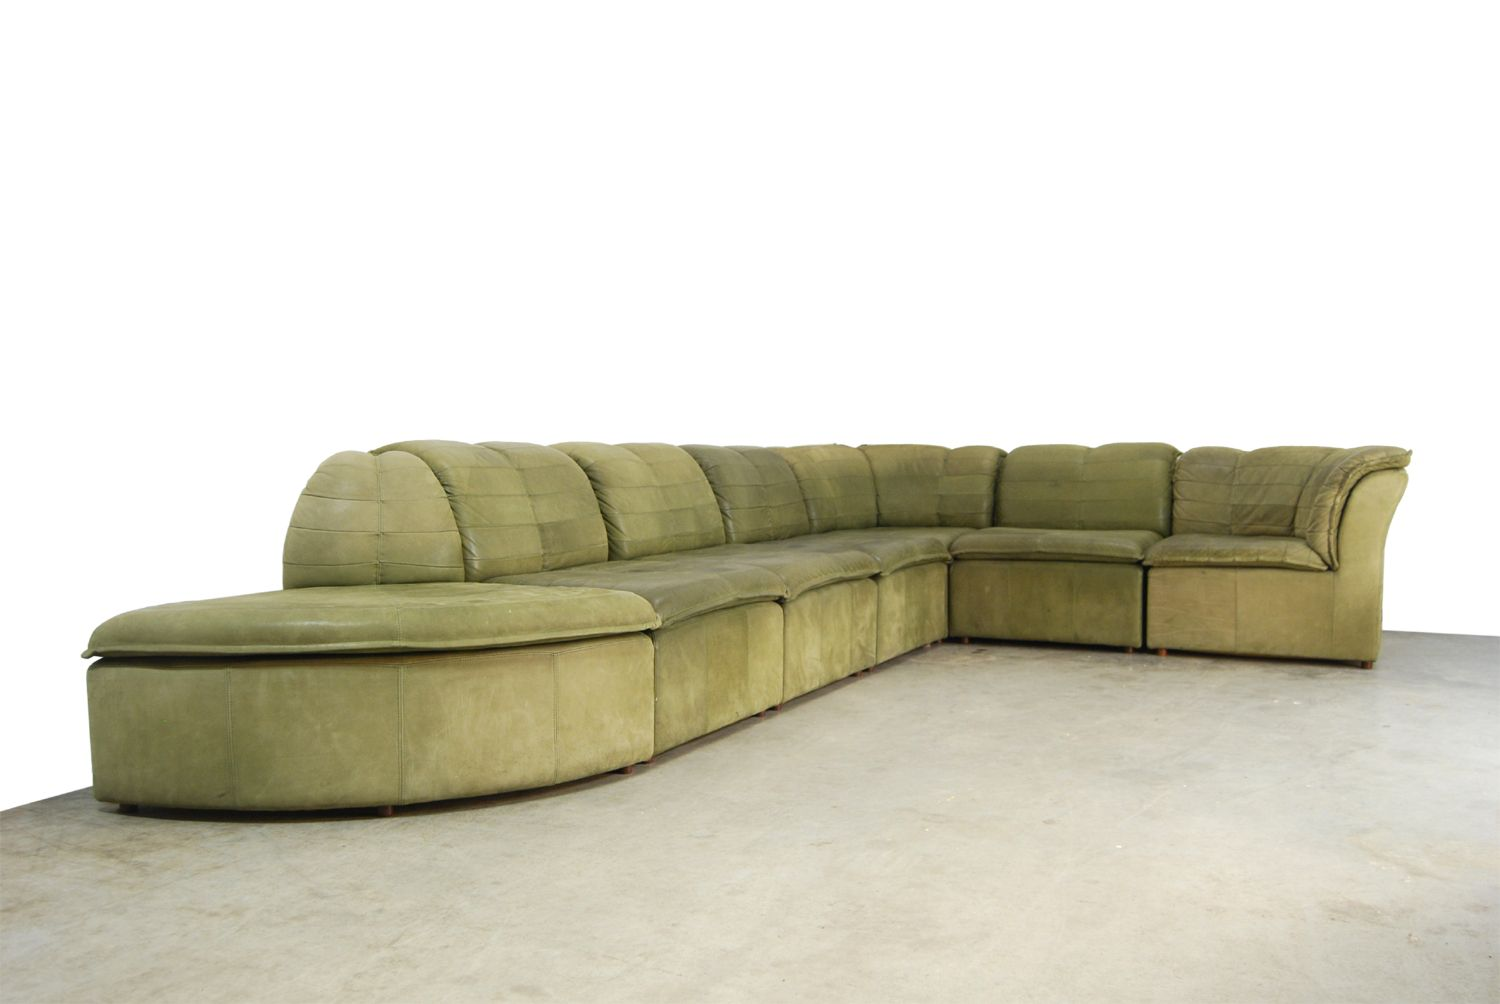 nubuck leather sofa foam cushion replacement modular from laauser 1970s for sale